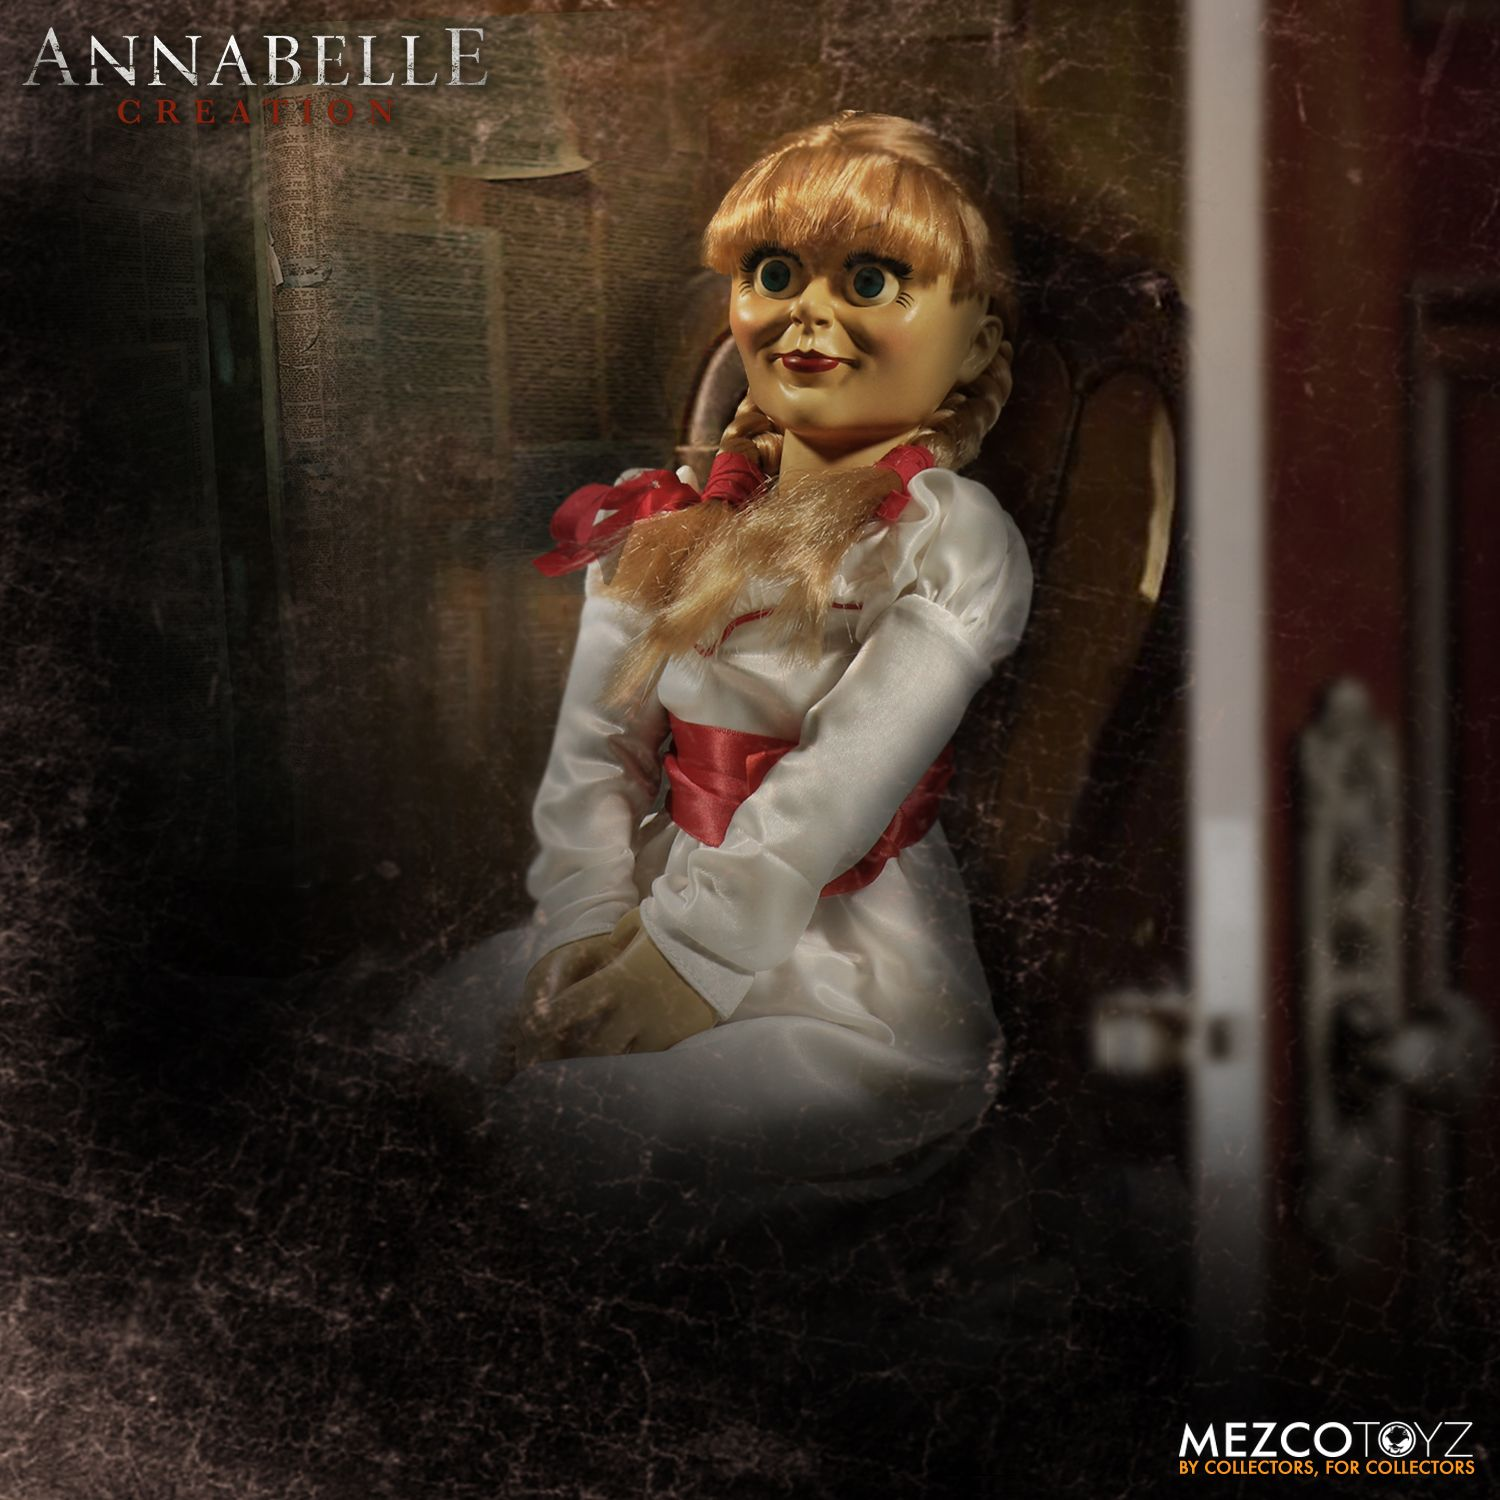 Mezco's 'Annabelle: Creation' Scaled Prop Replica Now Up ...